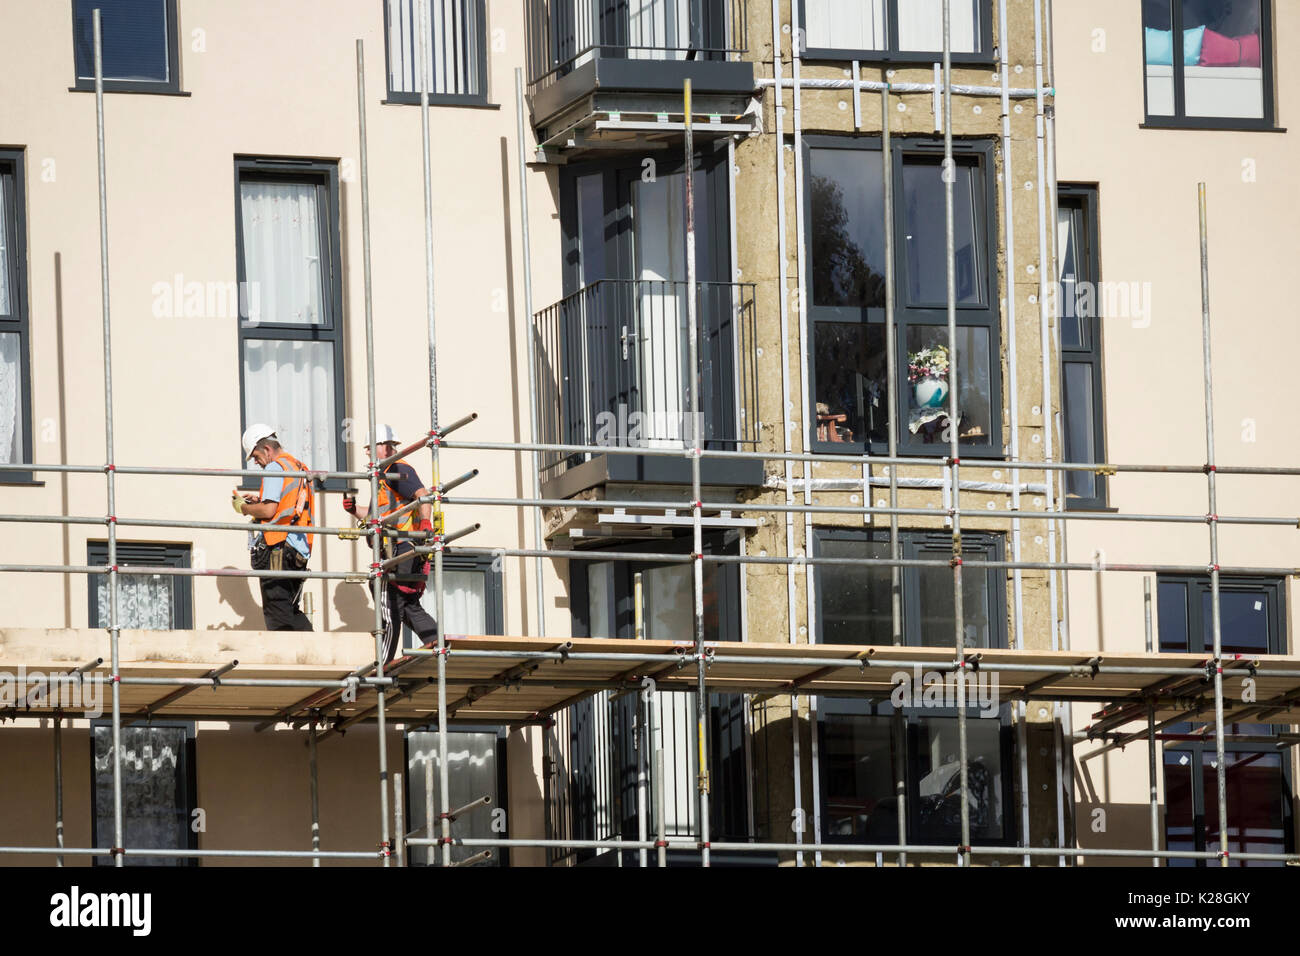 UK: Cladding being removed from tower blocks at Kennedy Gardens in Billingham, north east England. - Stock Image